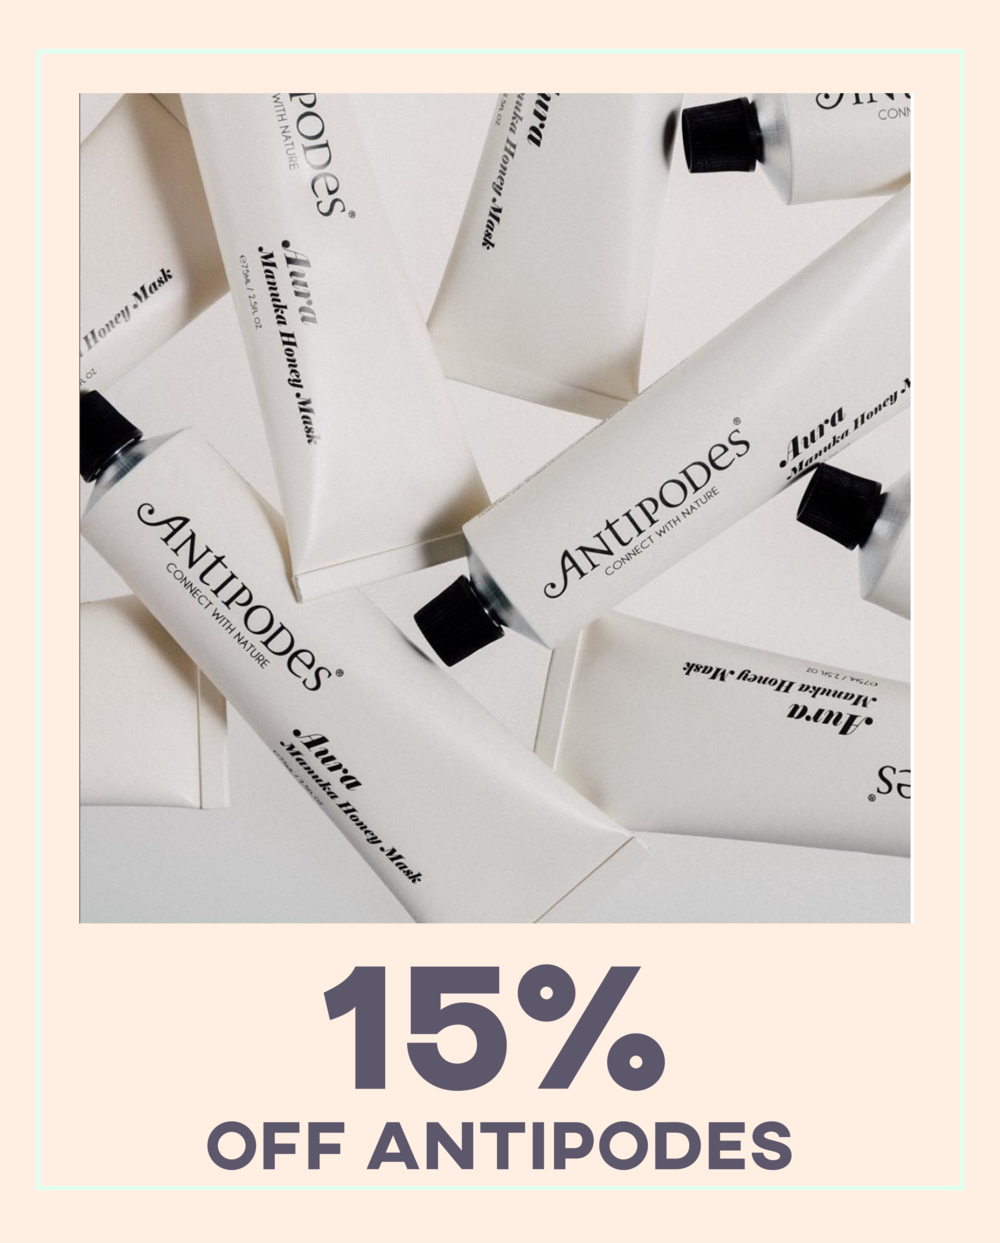 antipodes cruelty free discount code